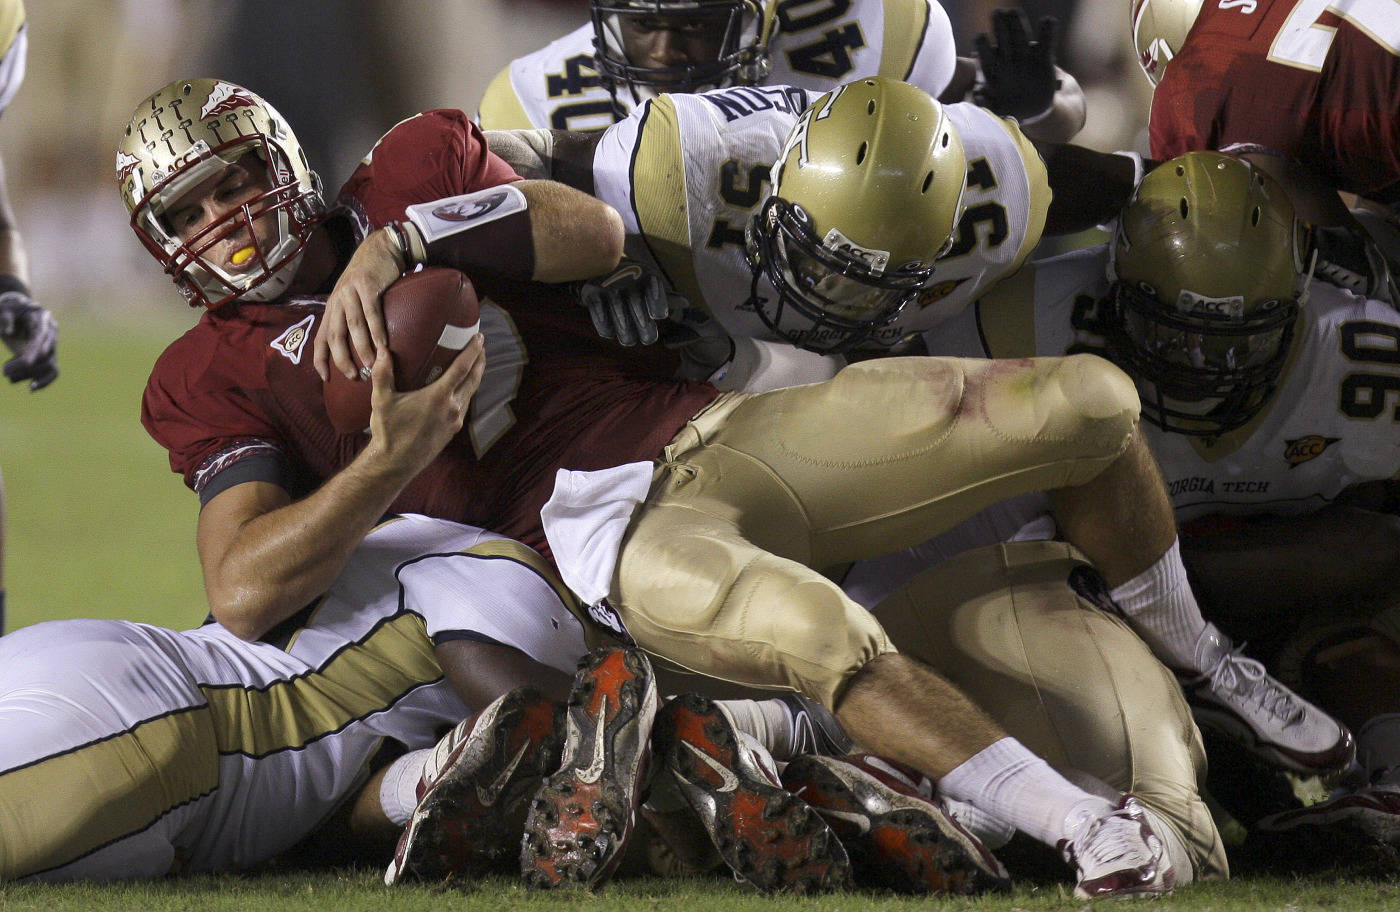 Florida State quarterback Christian Ponder, center, falls for first-down yardage as Georgia Tech linebacker Brad Jefferson, (51) tries to make the stop during an NCAA college football game, Saturday, Oct. 10, 2009, in Tallahassee, Fla.